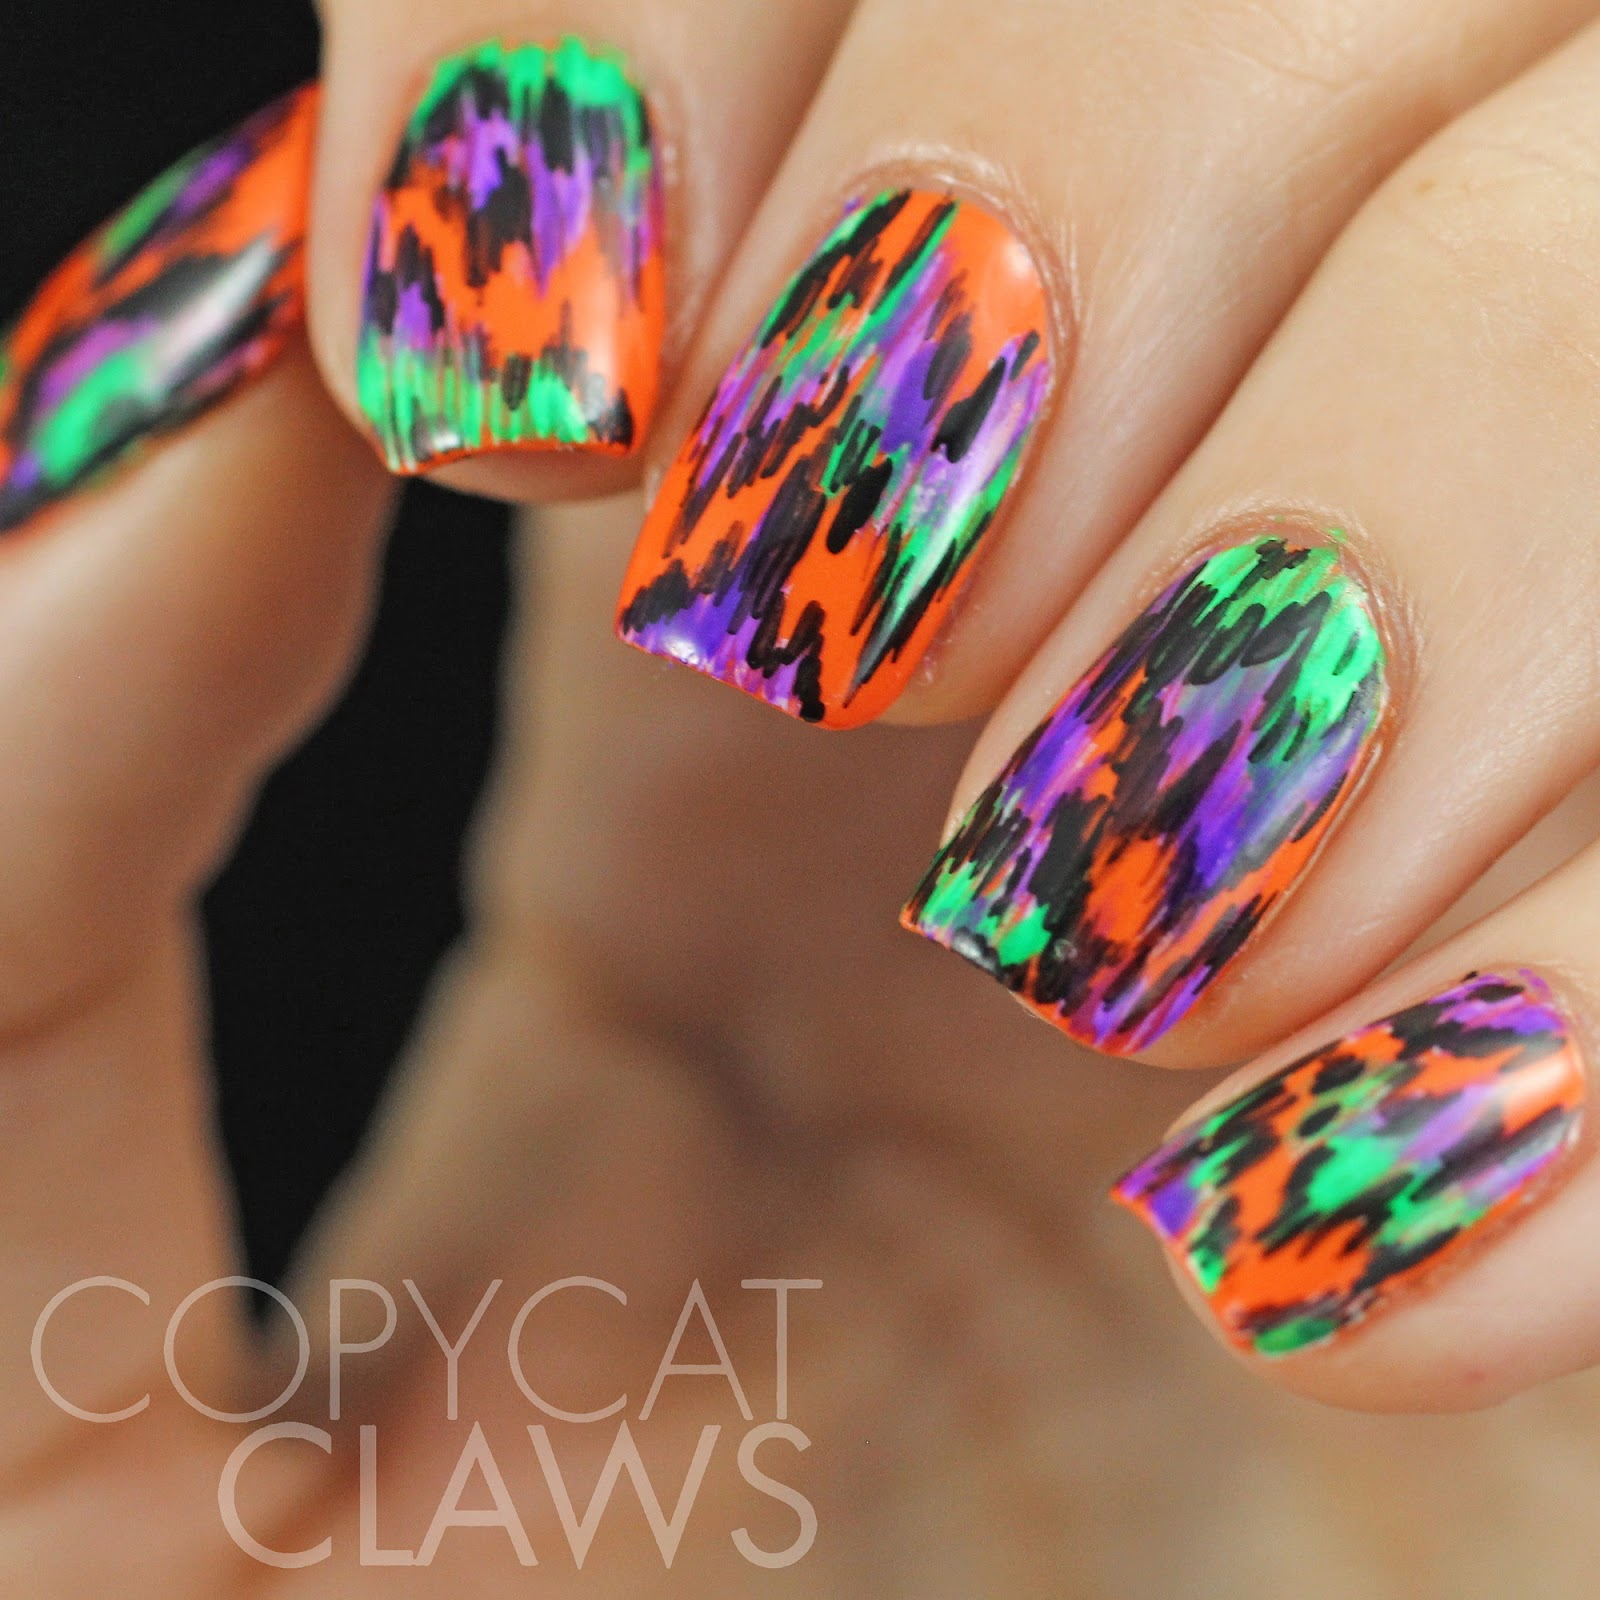 Copycat Claws: 40 Great Nail Art Ideas - Orange, Purple ...